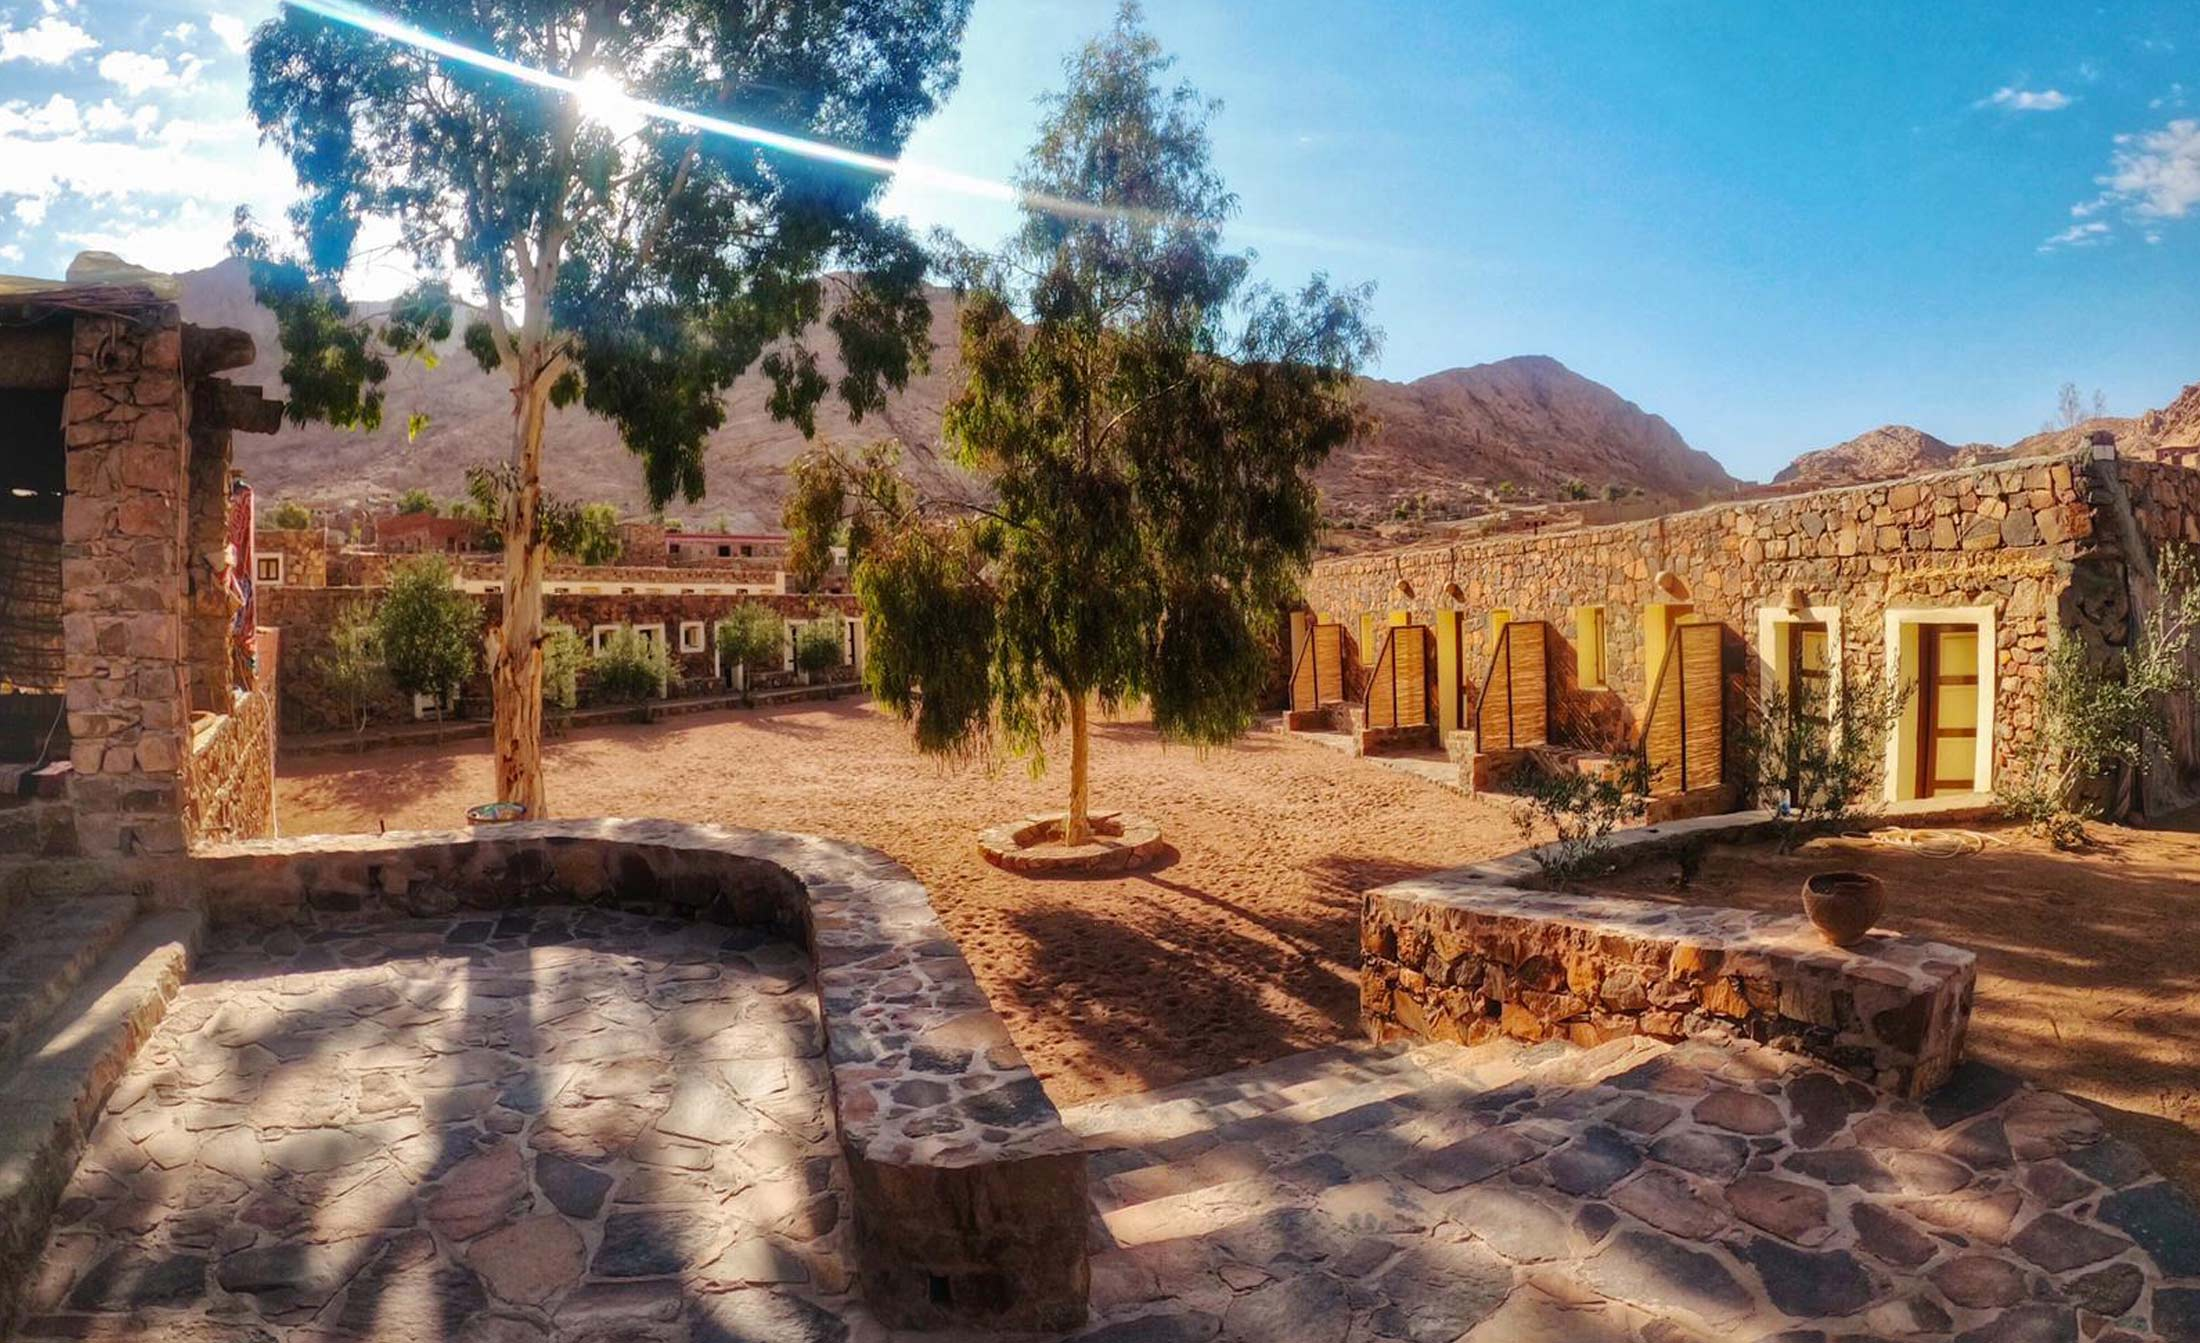 Sheikh Mousa Bedouin Camp and Guest House